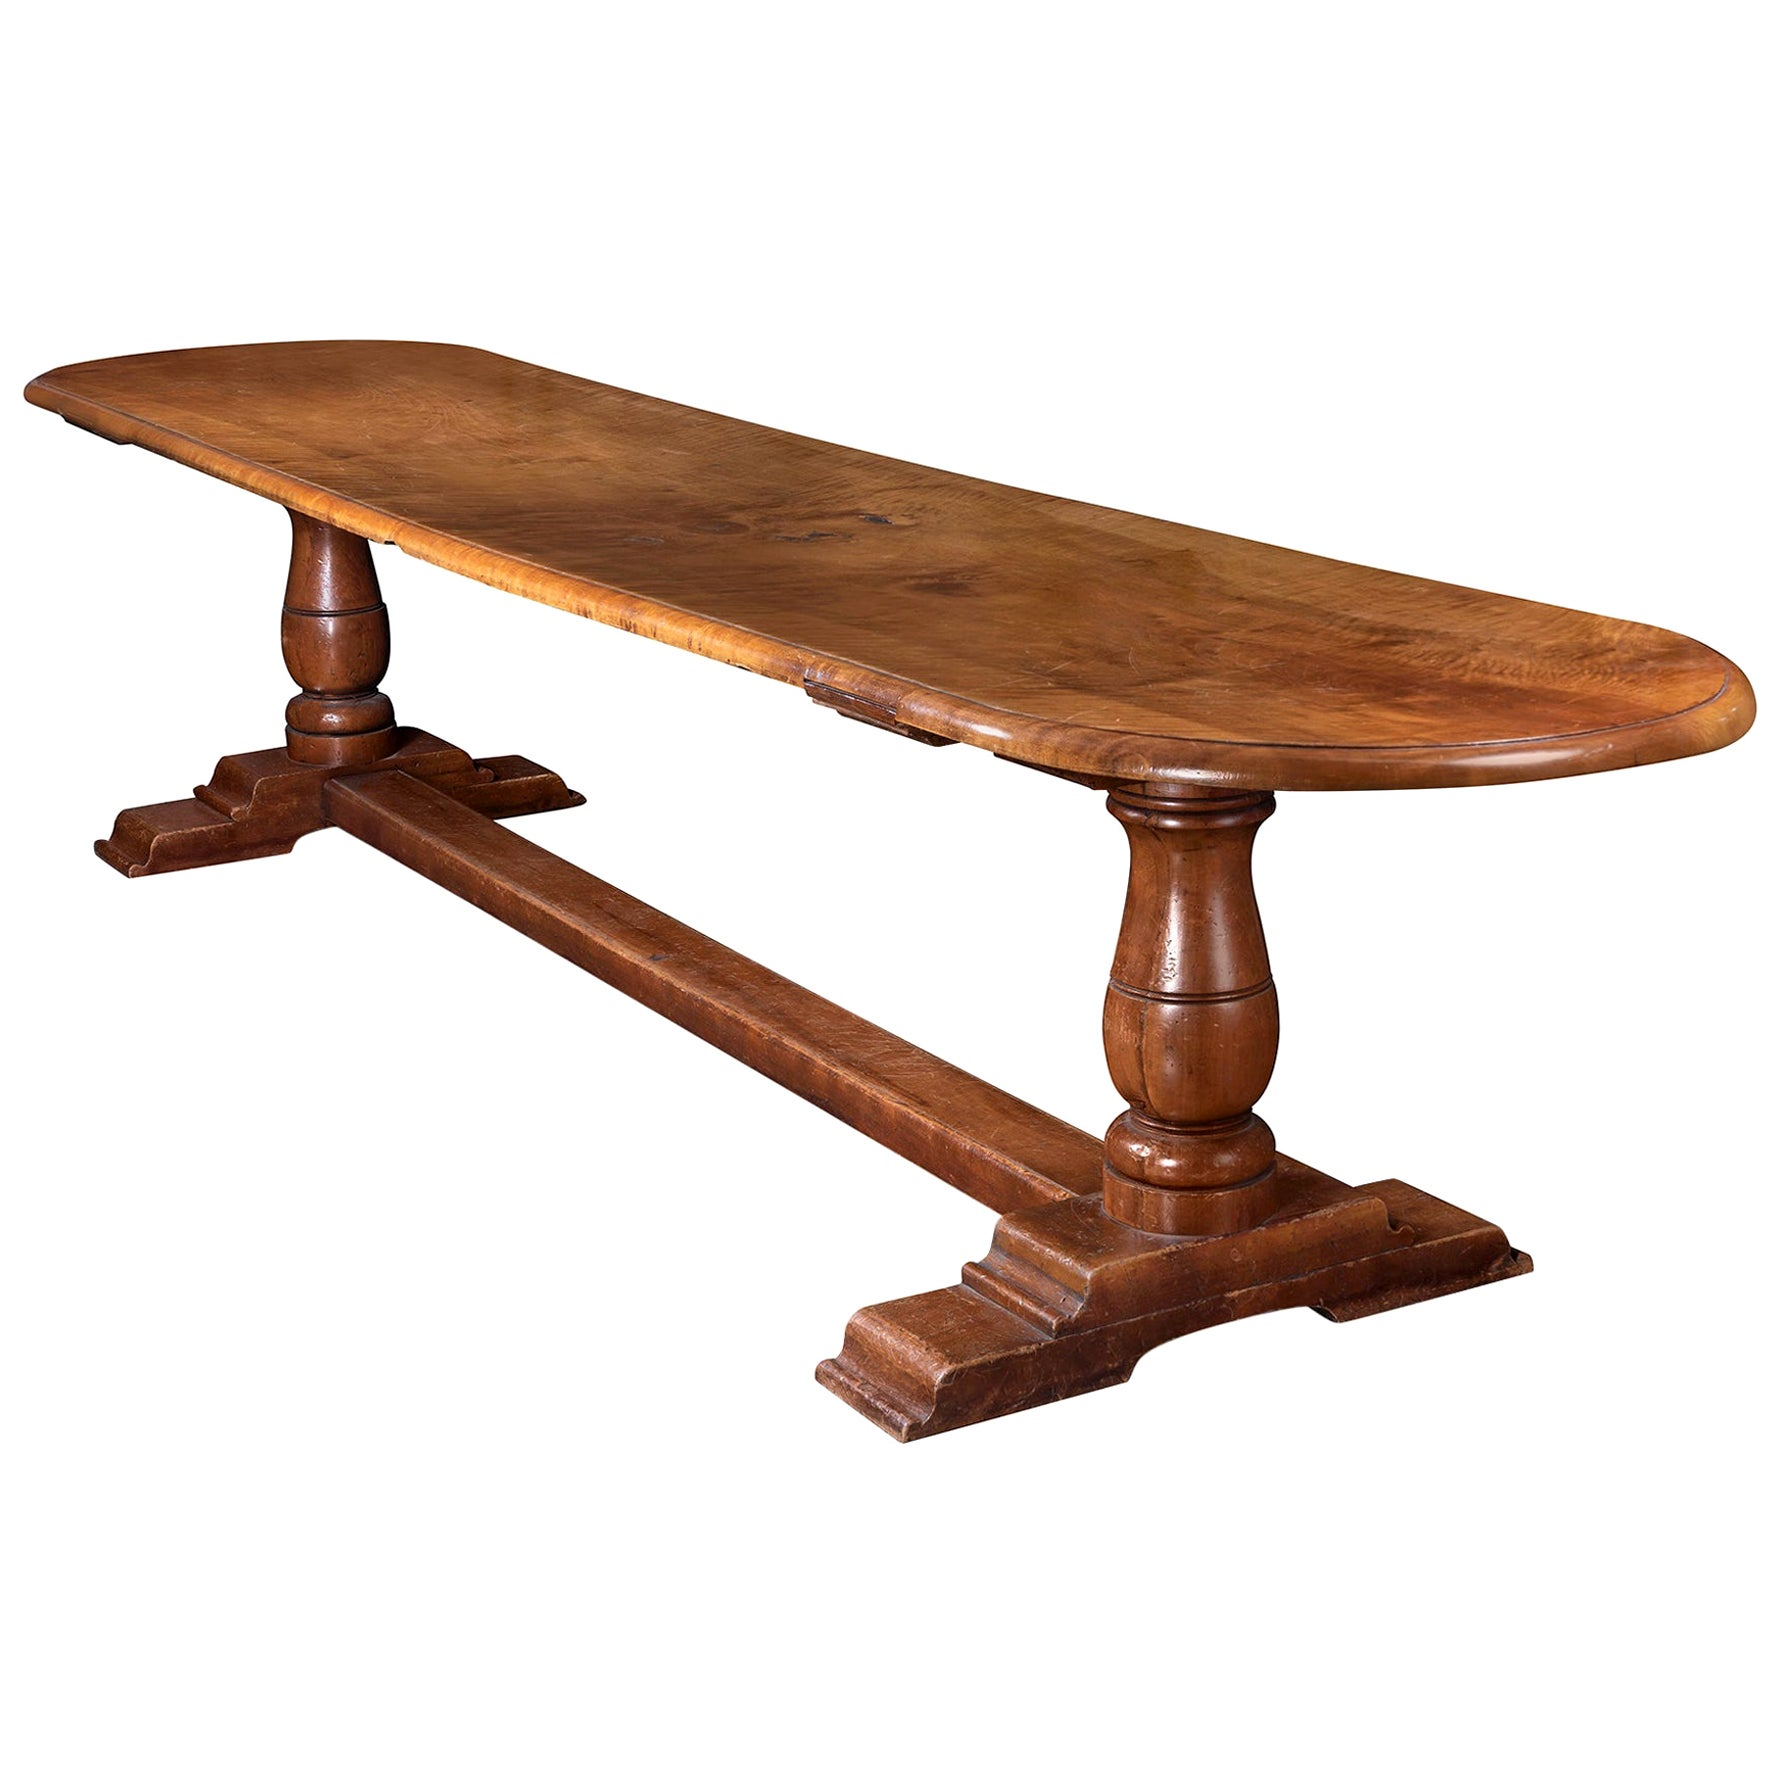 English Elm Refectory Table, Early 19th Century